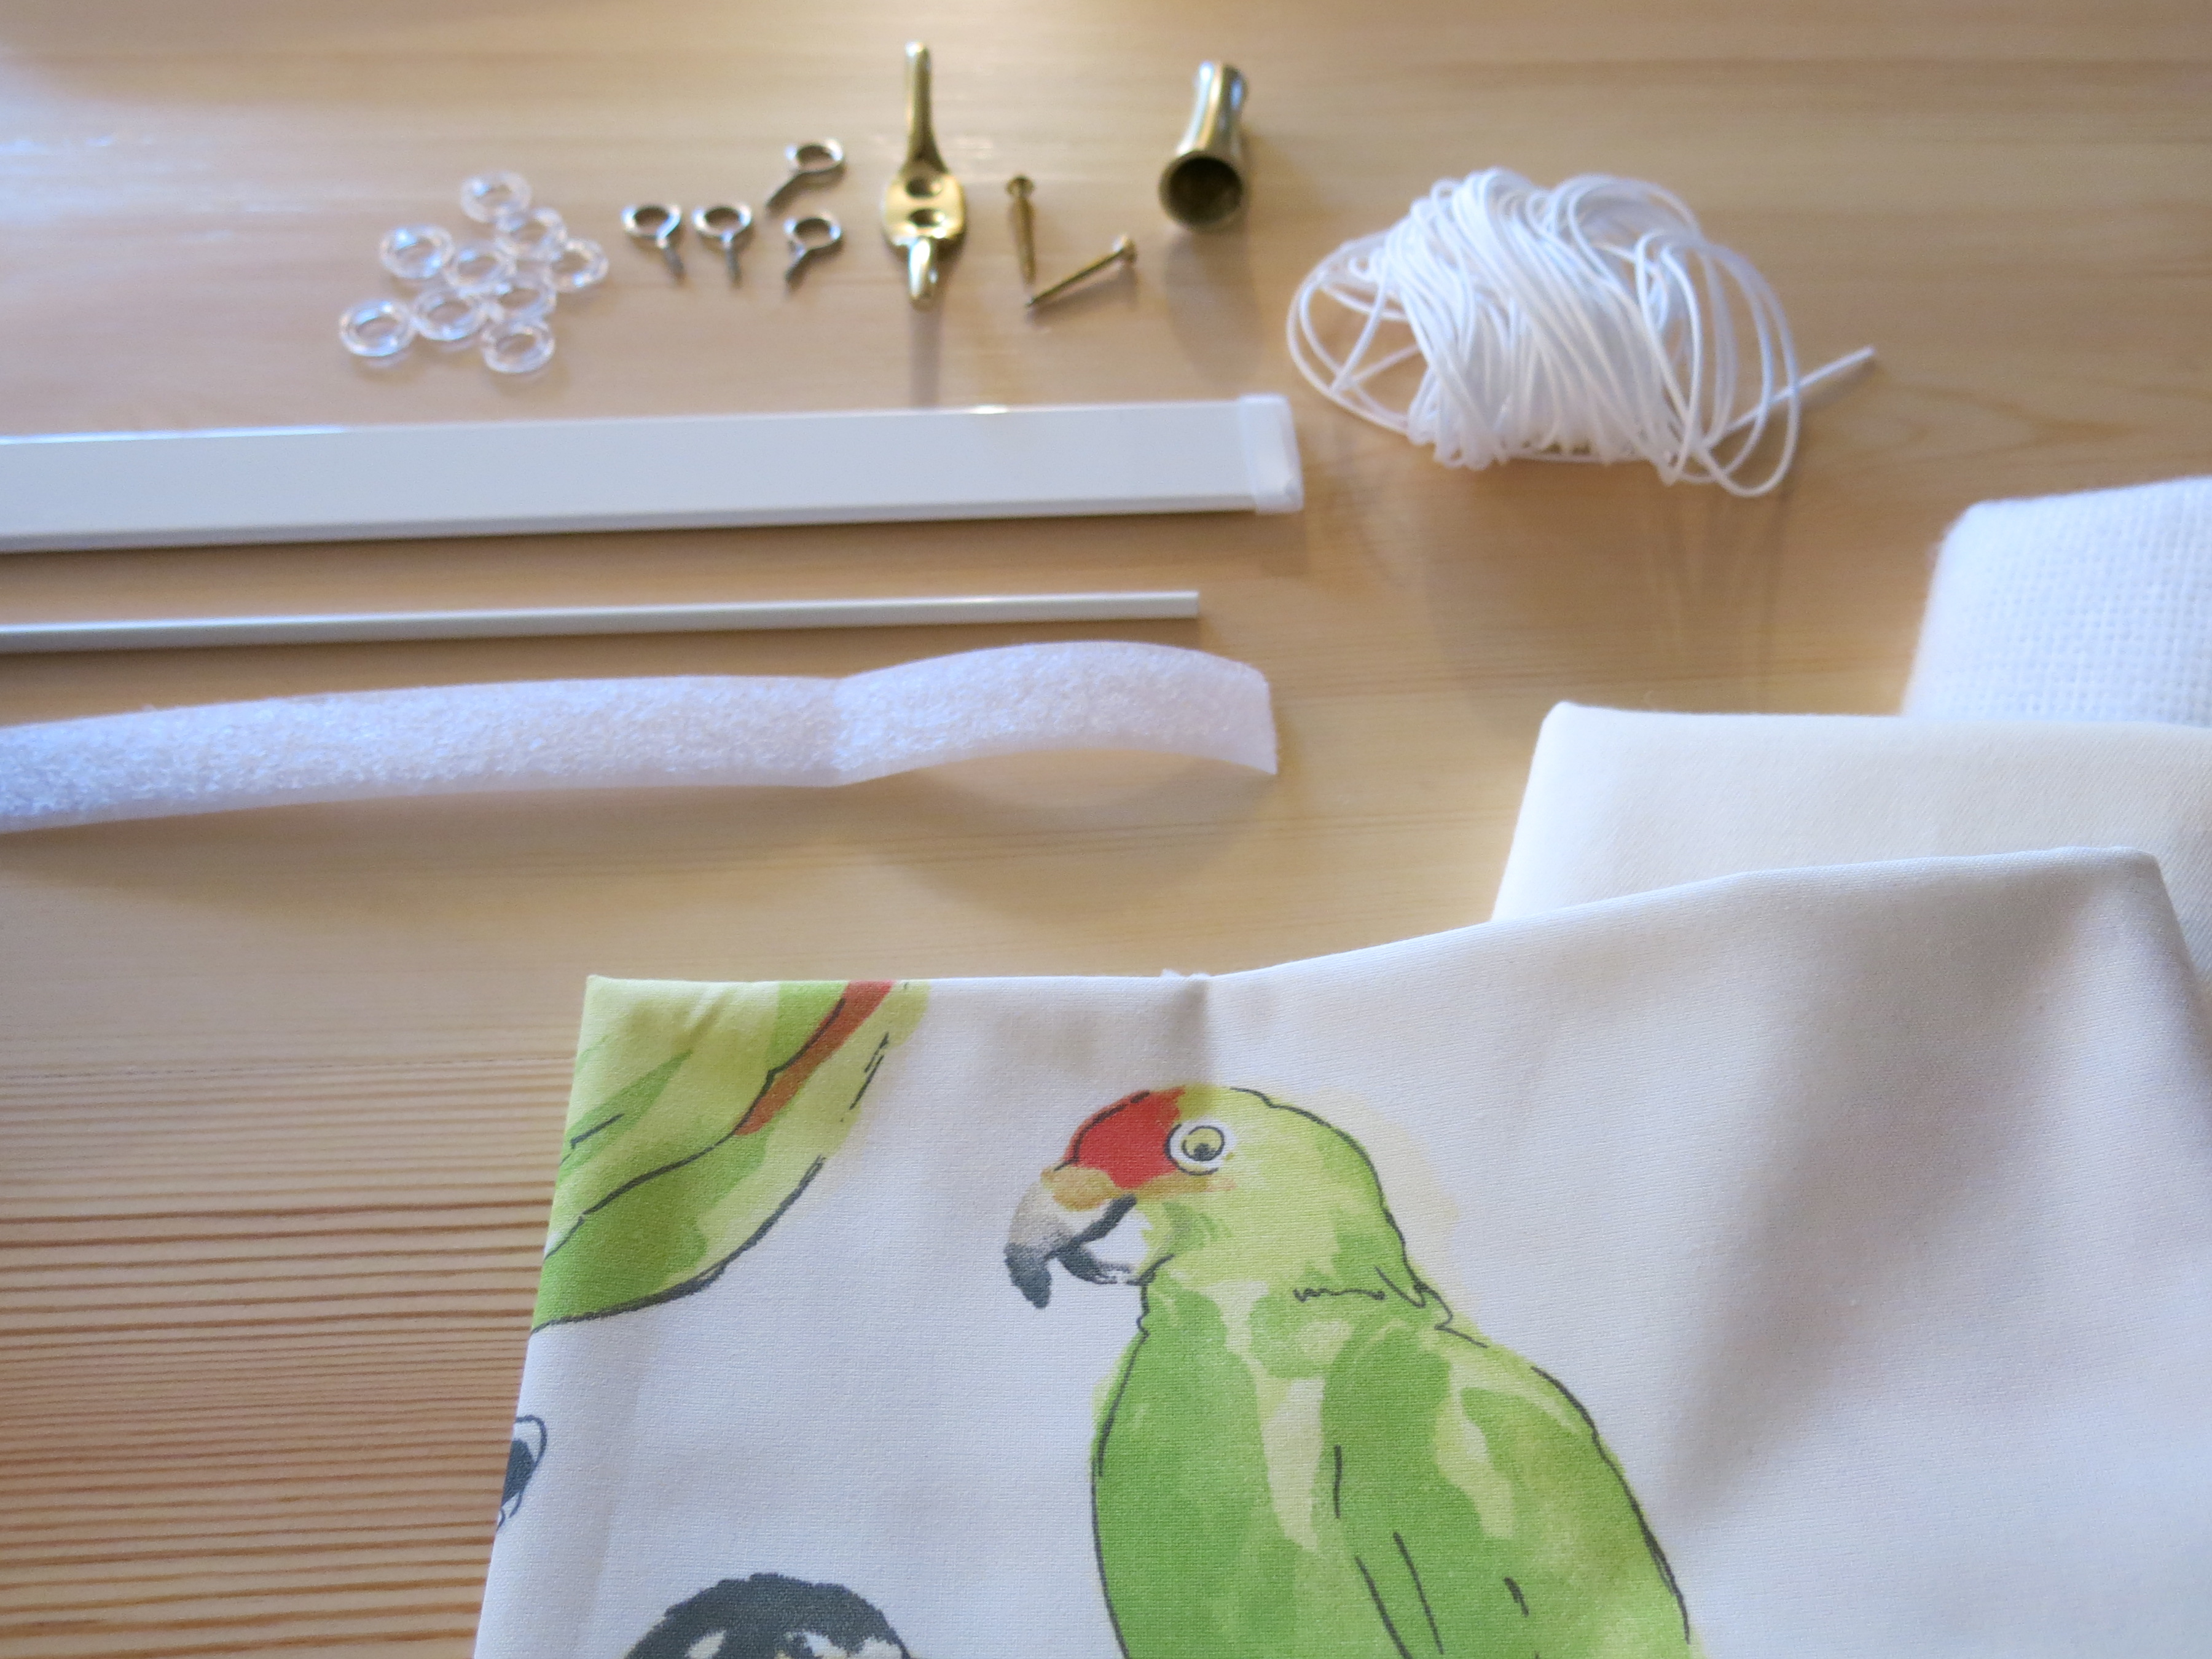 Free no sew roman shade instructions for child safe shades.